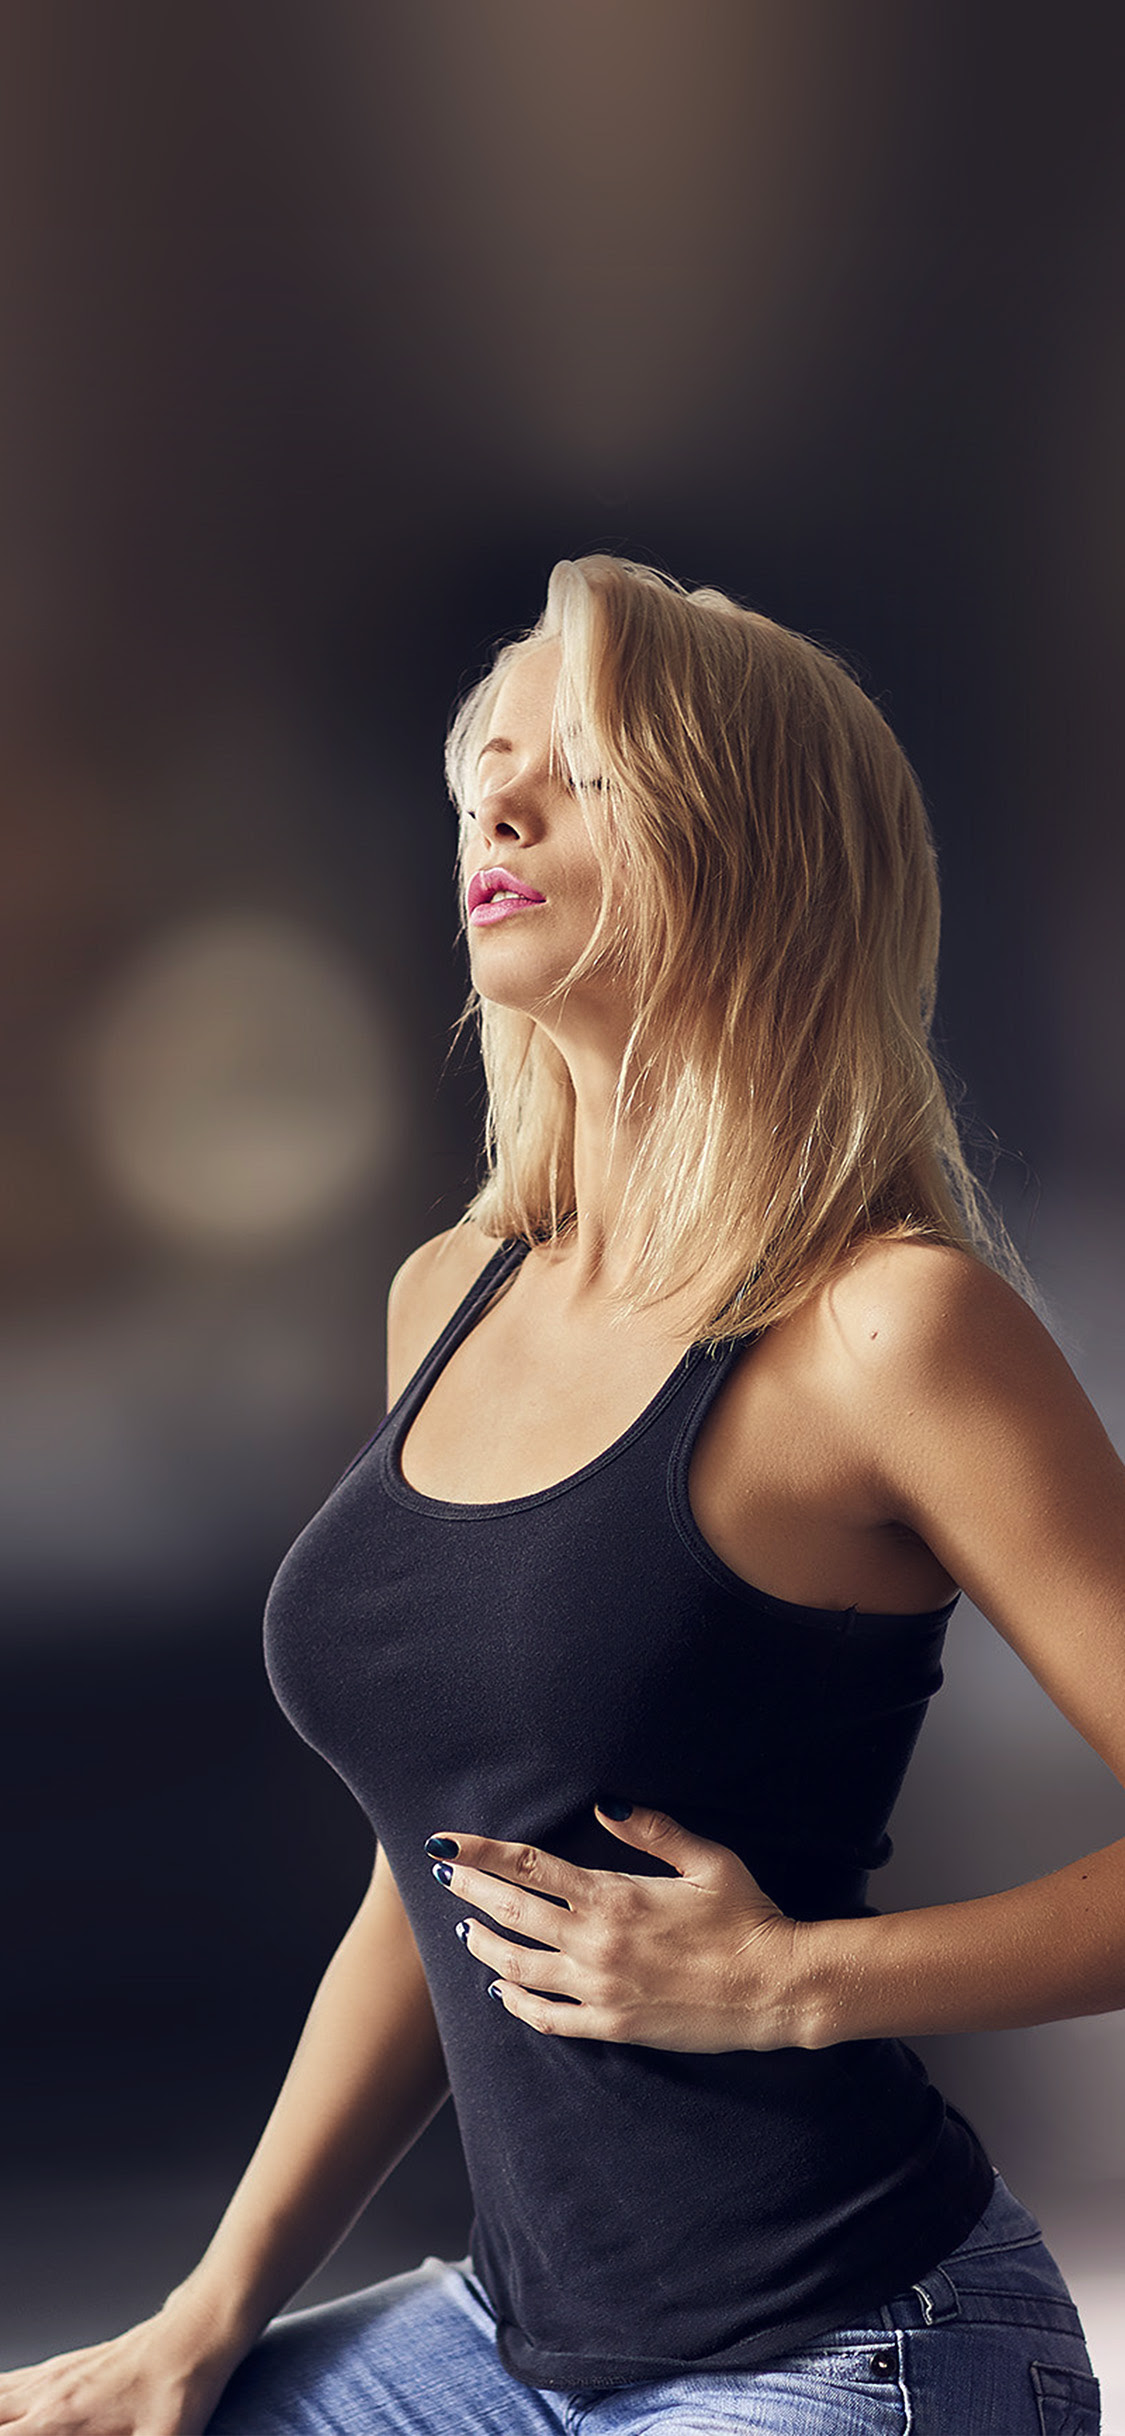 Iphonexpapers Com Iphone X Wallpaper Ho60 Girl Sexy Woman Model Blonde